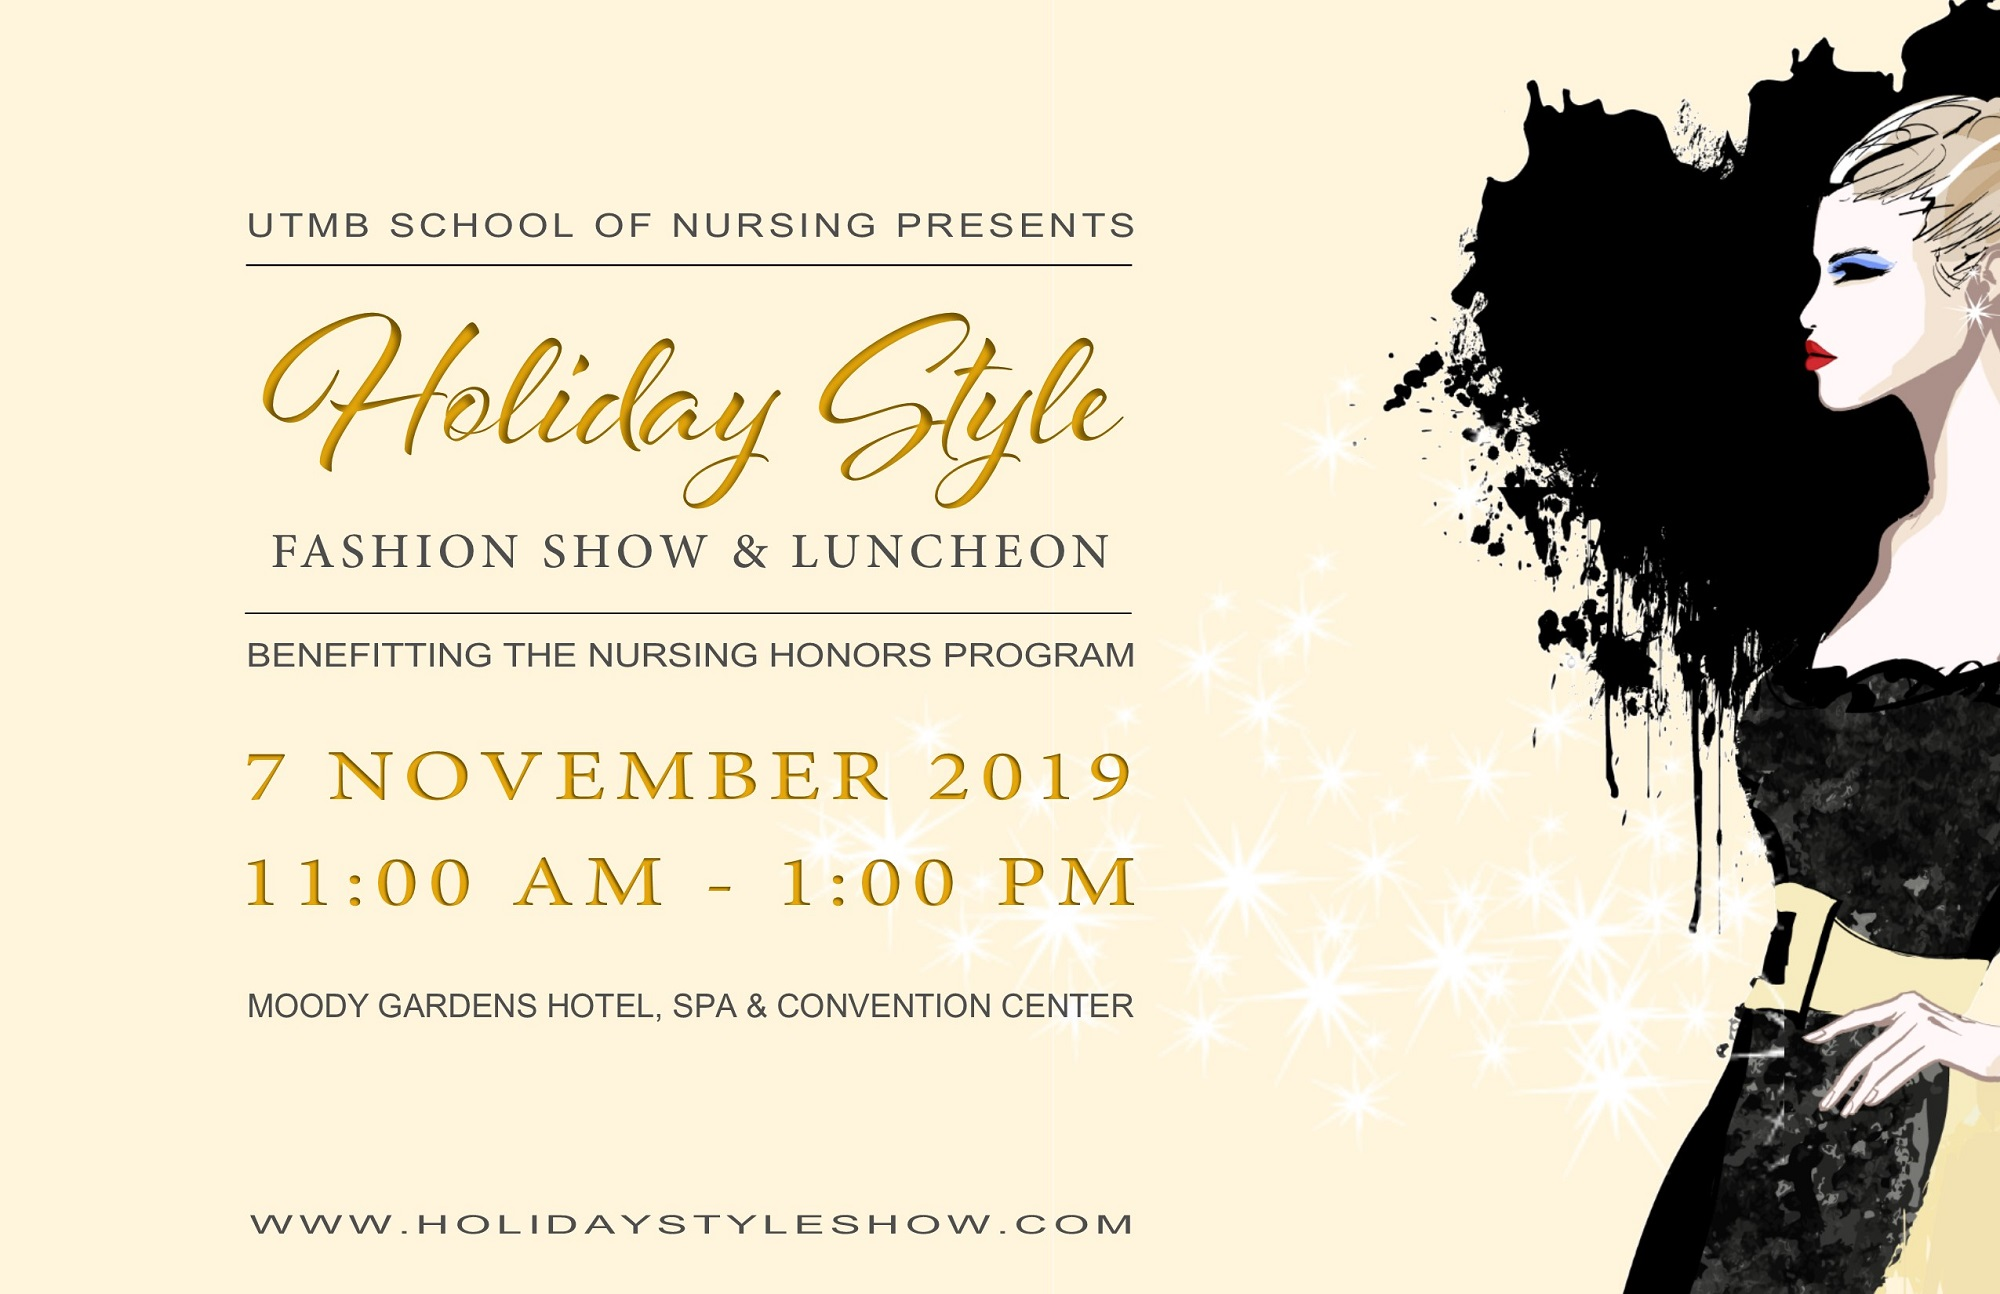 2019 Holiday Style Fashion Show & Luncheon